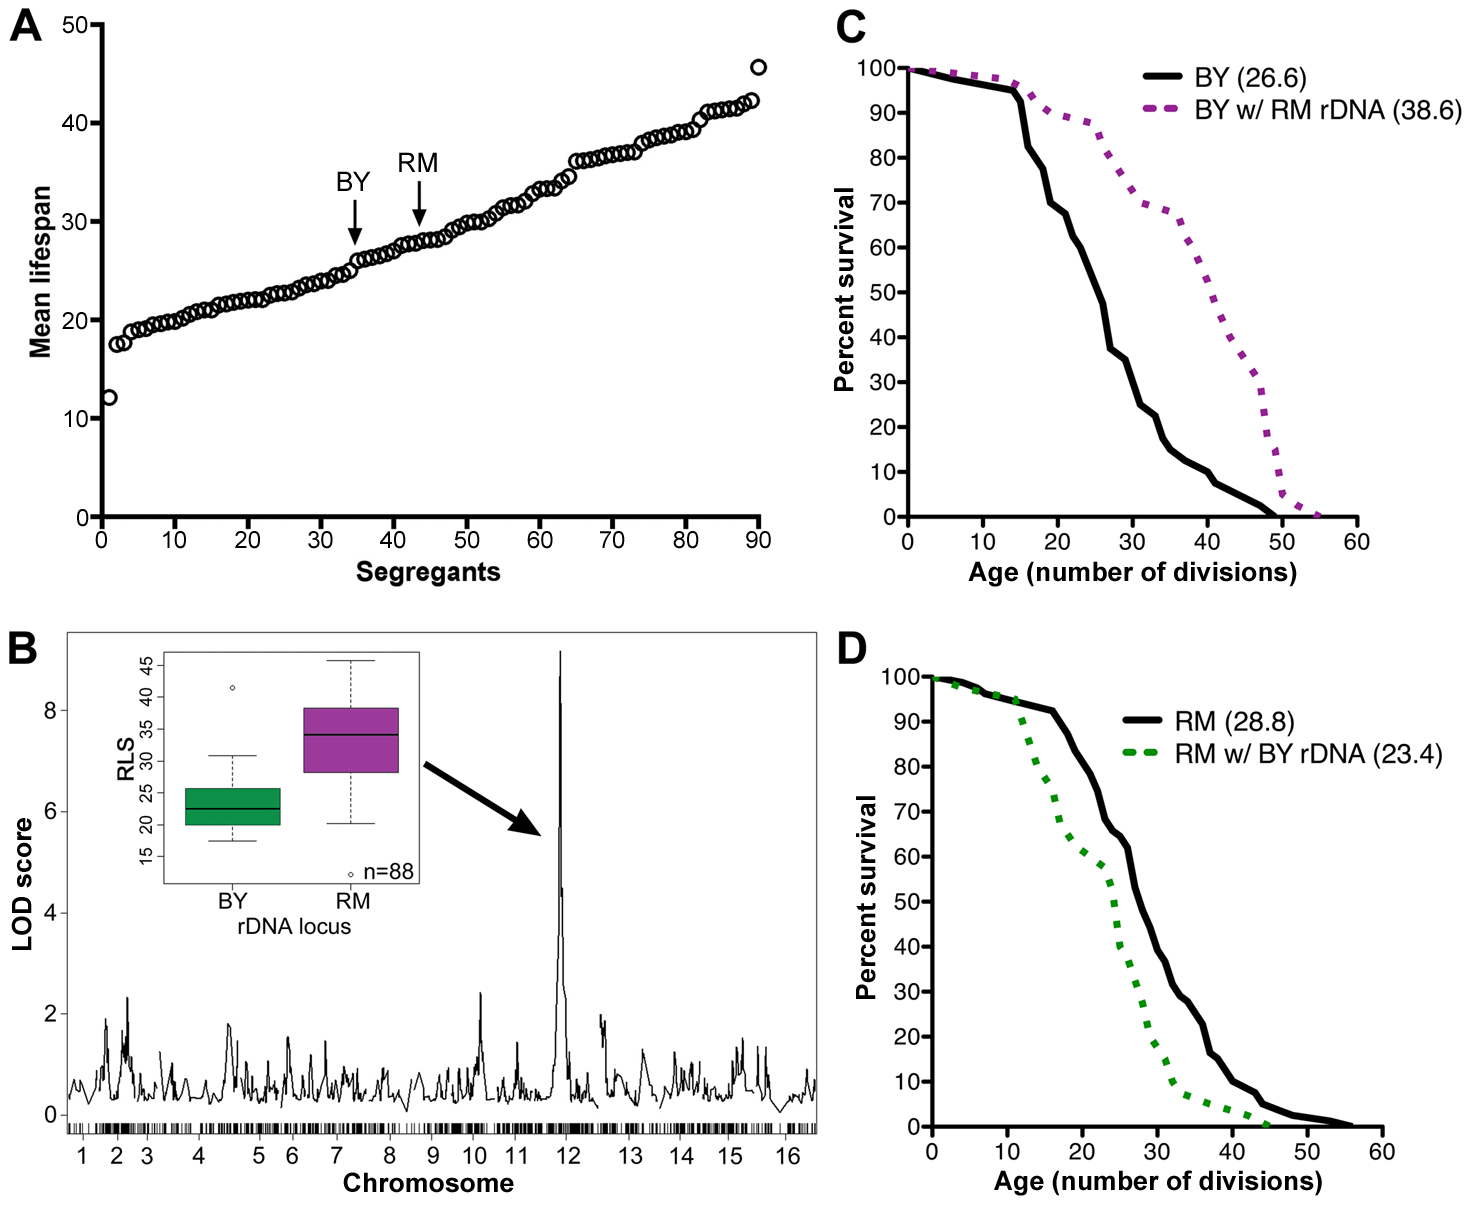 rDNA is the major regulator of replicative lifespan in the RM/BY cross.